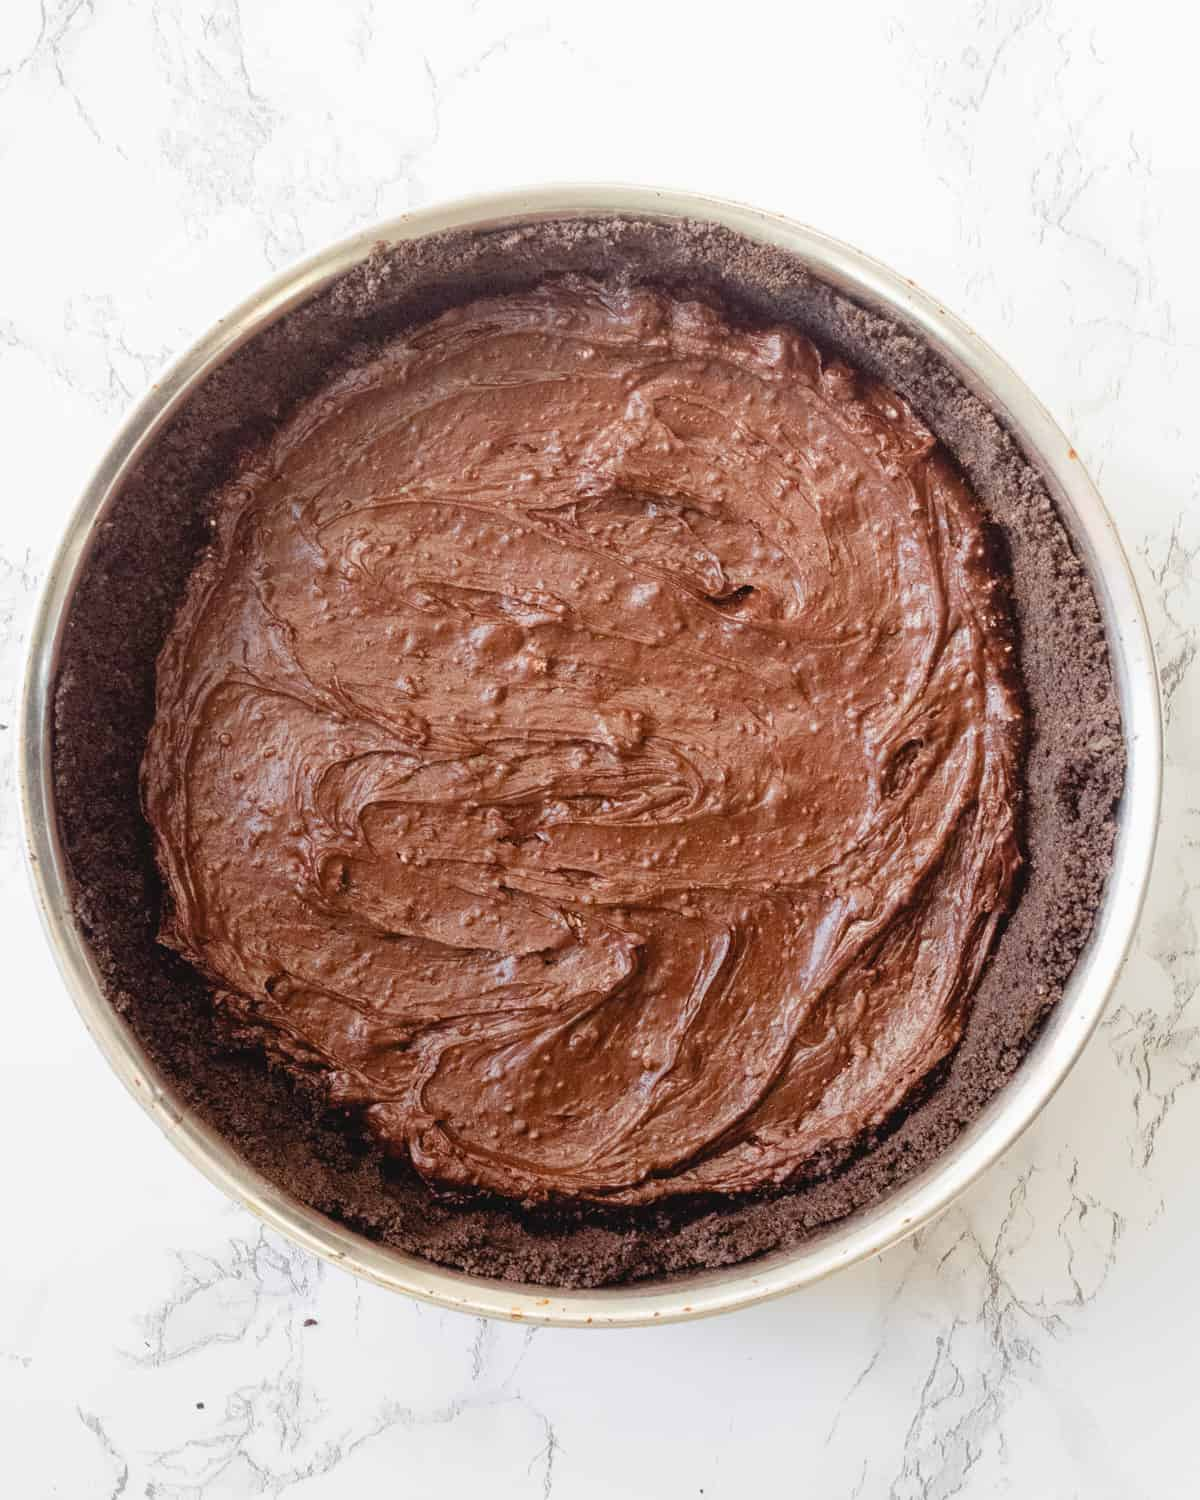 Flourless chocolate cake batter is spread over the Oreo crust.